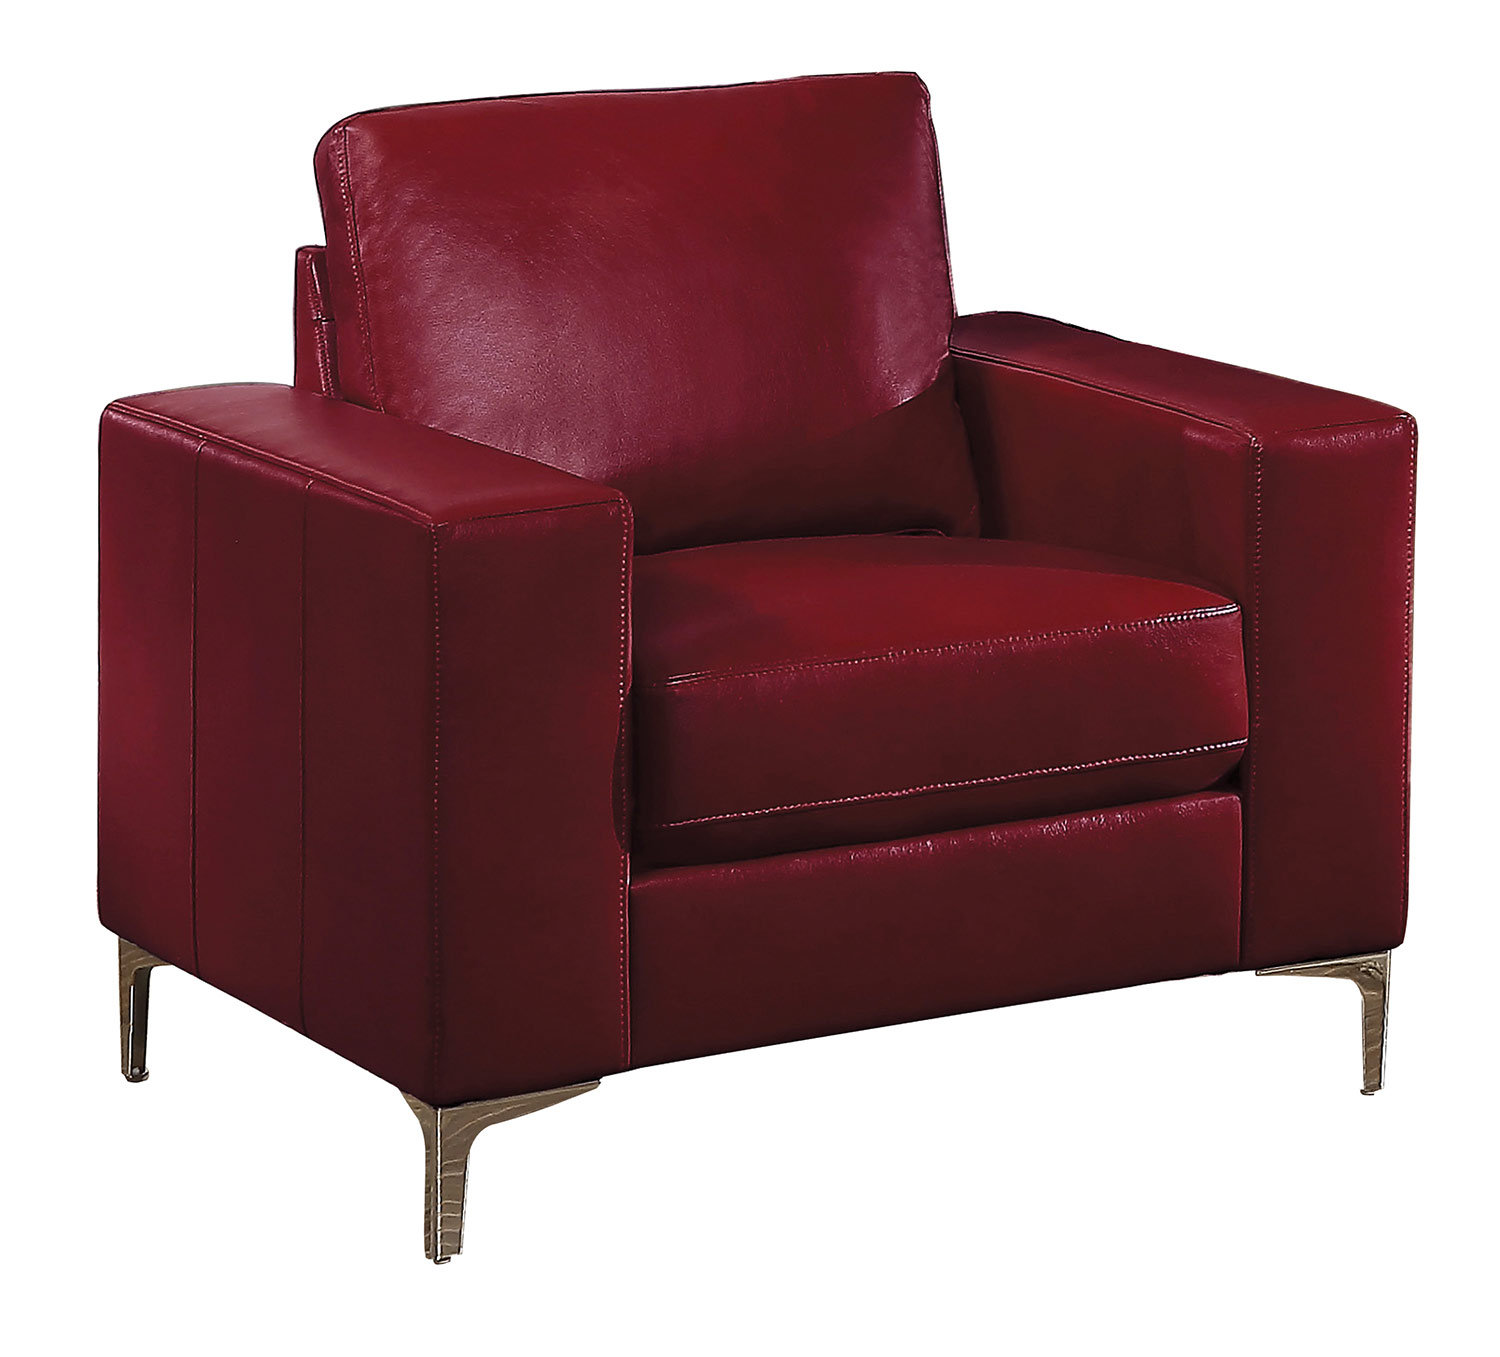 Homelegance Iniko Sofa Set Red Leather Gel Match 8203rd